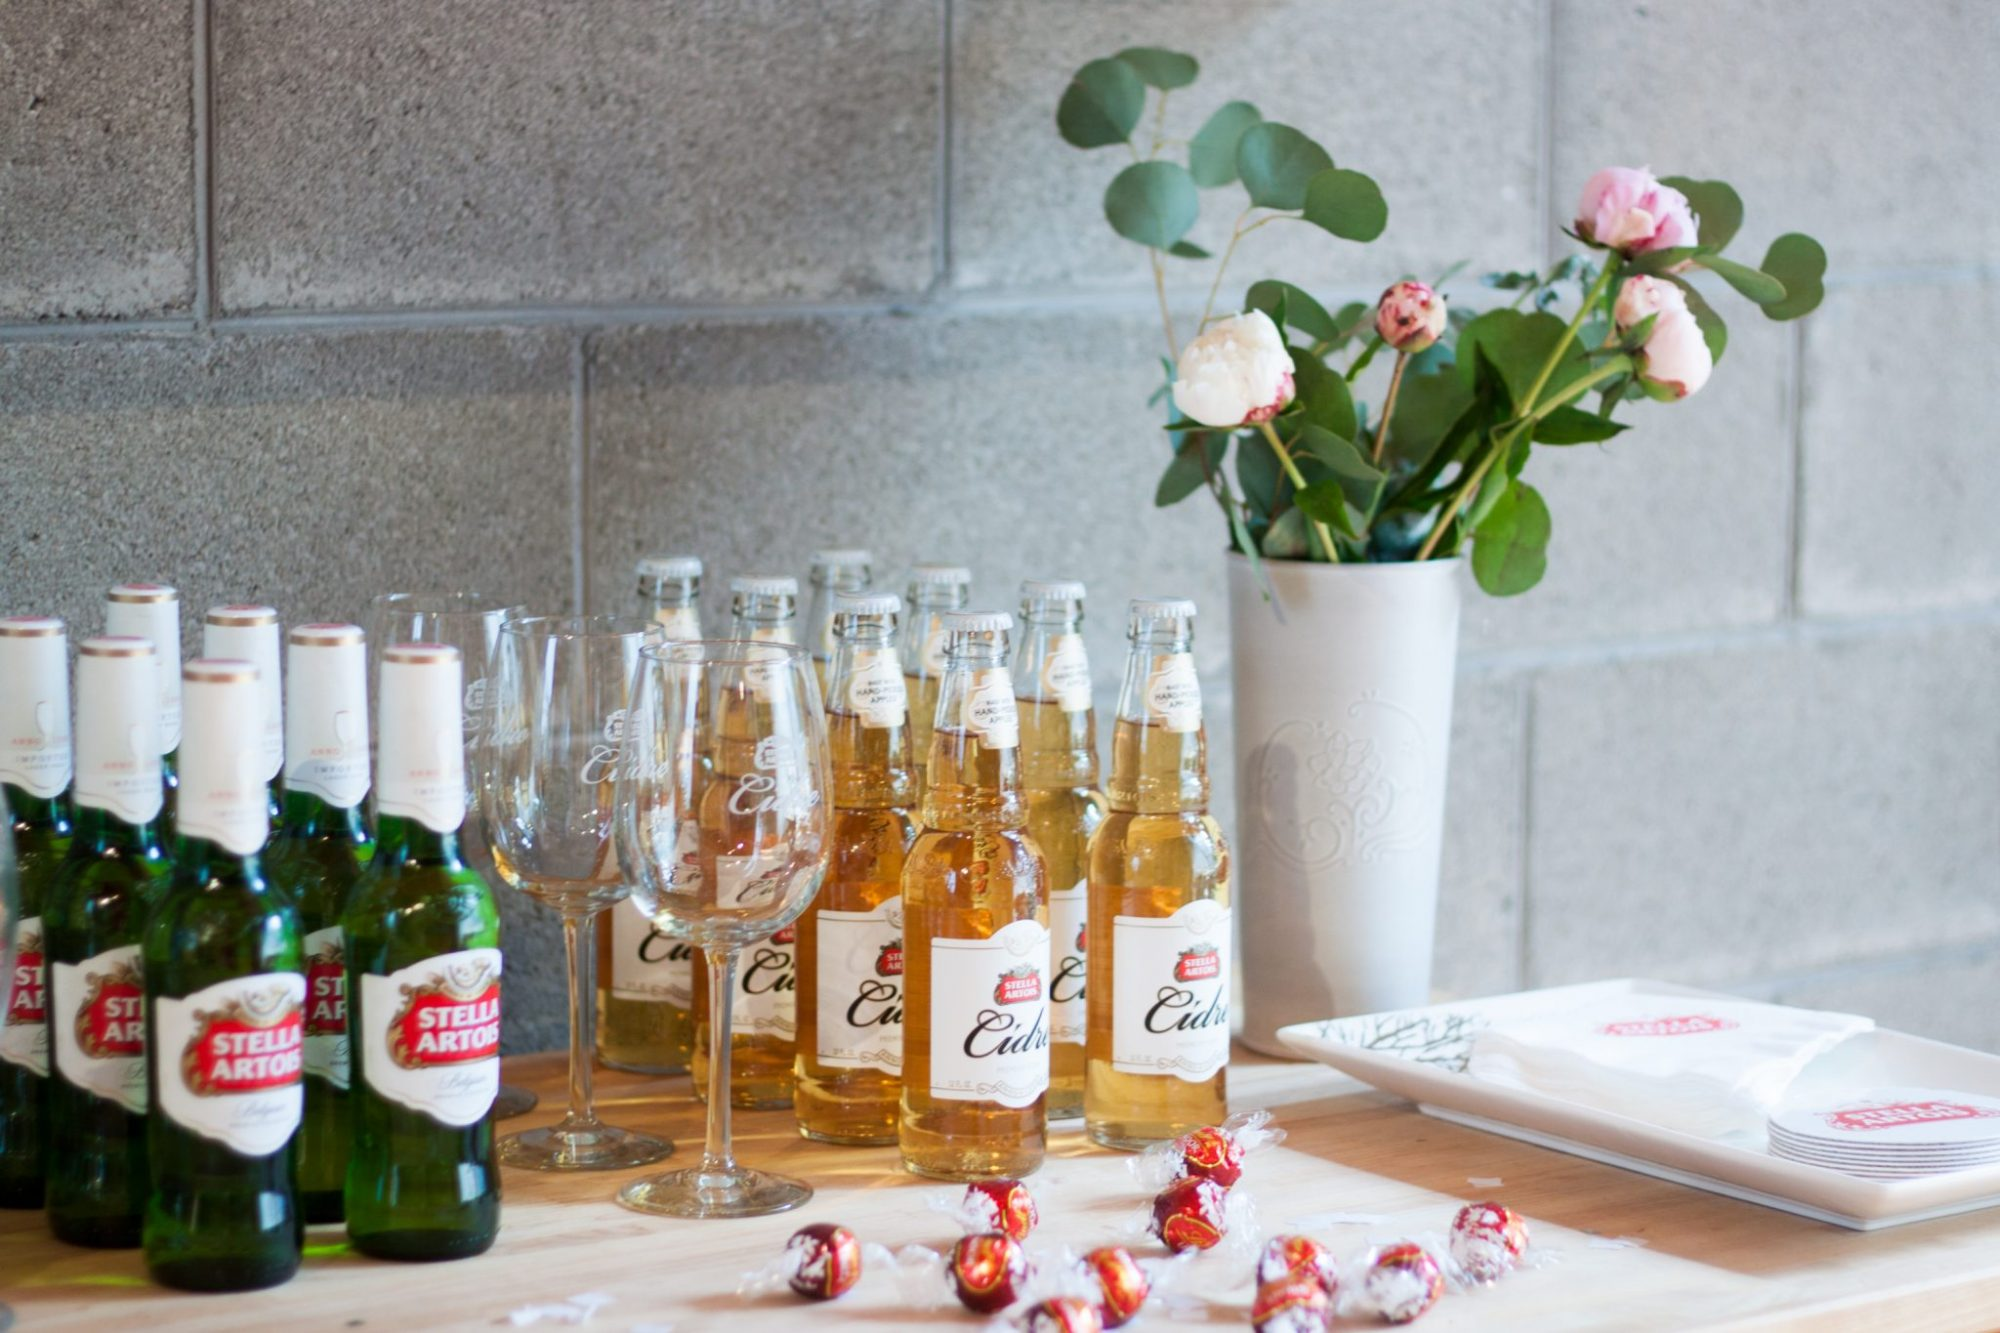 stella artois, boho glam party decor, party hosting tips, boho glam party ideas, summer party ideas, happy hour party, summer hosting, stella cidre, stella lager, laurie duncan art, how to decorate for a party, summer party ideas